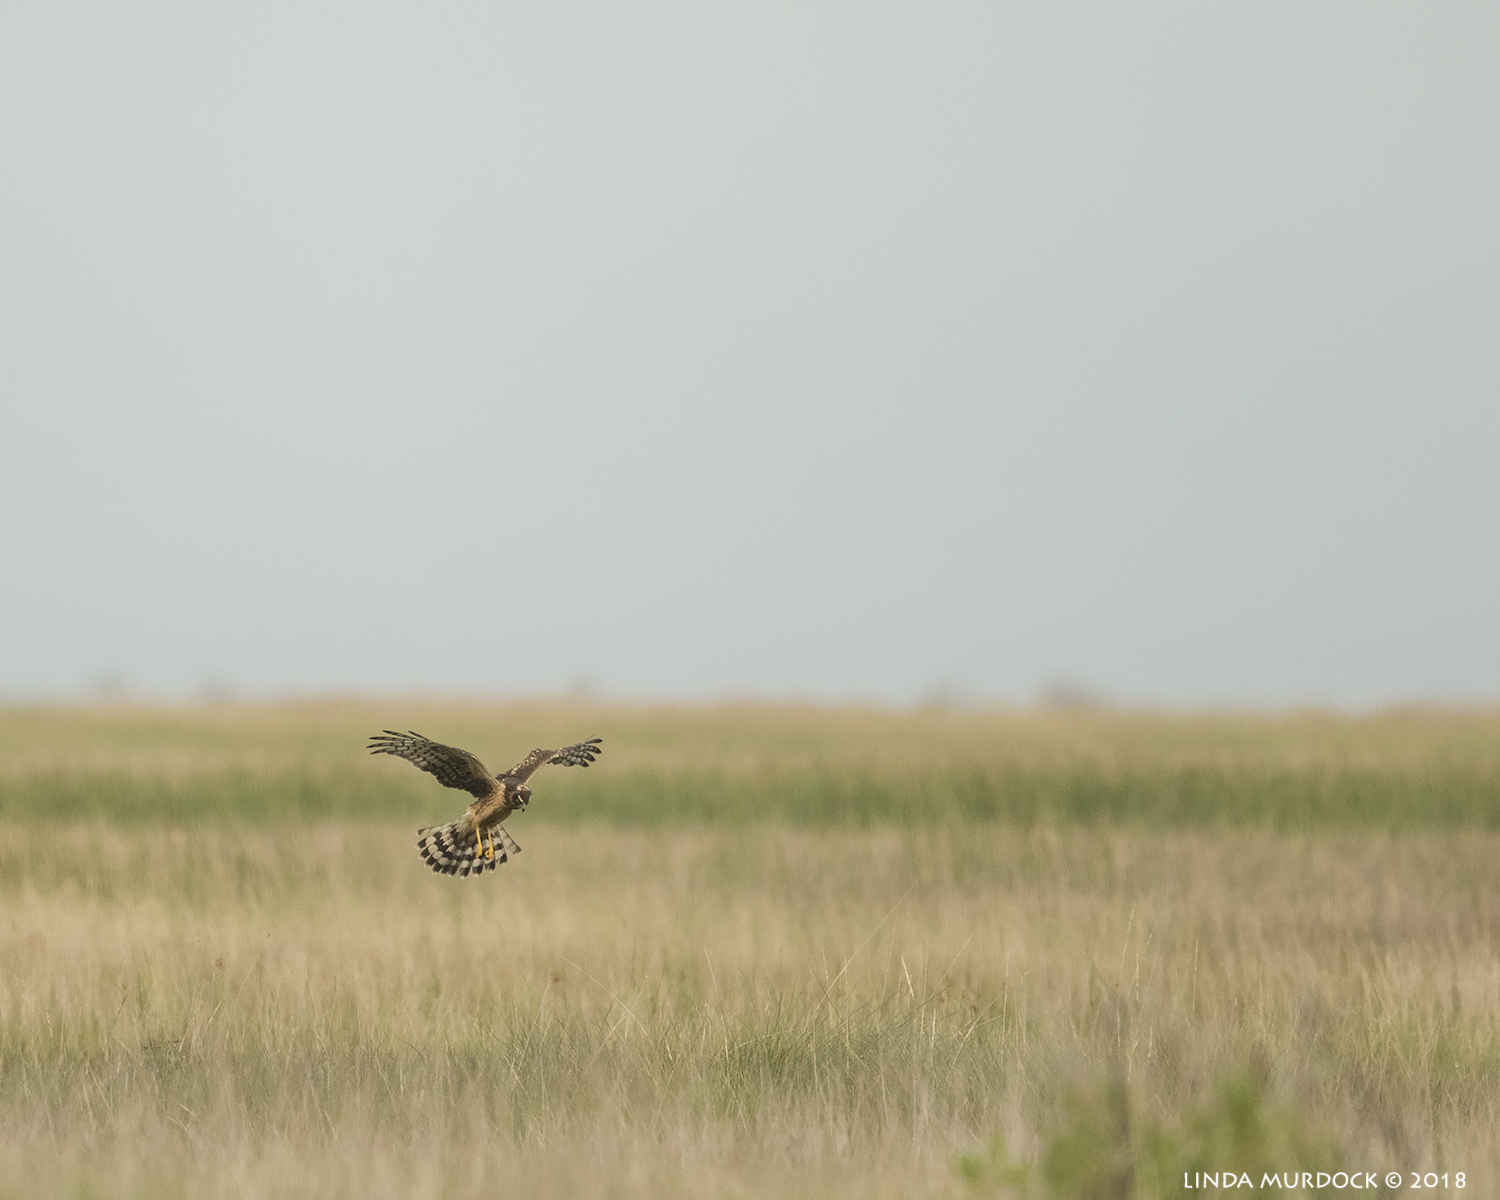 Female Northern Harrier hovering…  Nikon D850 with NIKKOR 500mm f/4E VR with Nikon 1.4x TC ~ 1/2500 sec f/6.3 ISO 1000; hand-held